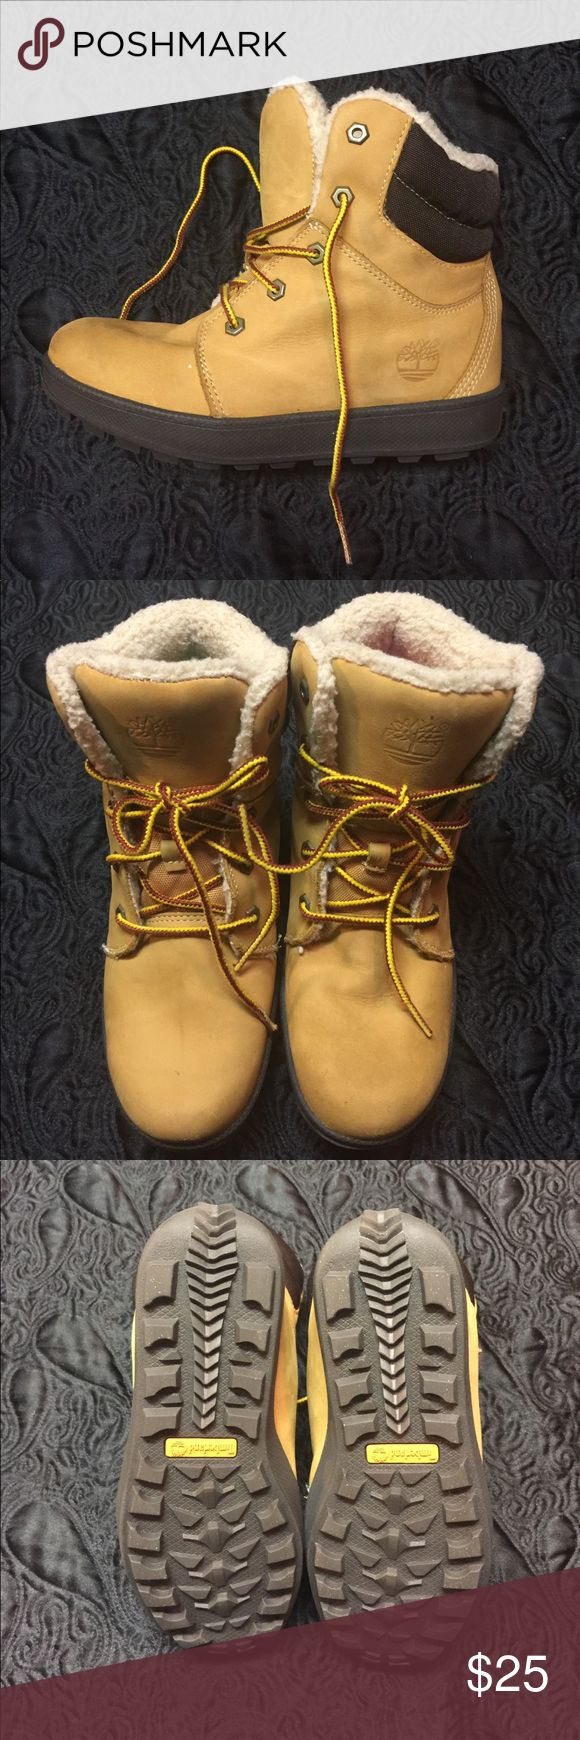 🐸 SALE - Unisex YOUTH Timberlands! Authentic gently worn youth Timberland boots with sheepskin lining.  Boys size 4.5M, and fits a girls size 6.5M.  Comes from a pet and smoke free environment.  In great condition.  The soles still look brand new.  great deal, for a limited time only! Timberland Shoes Boots